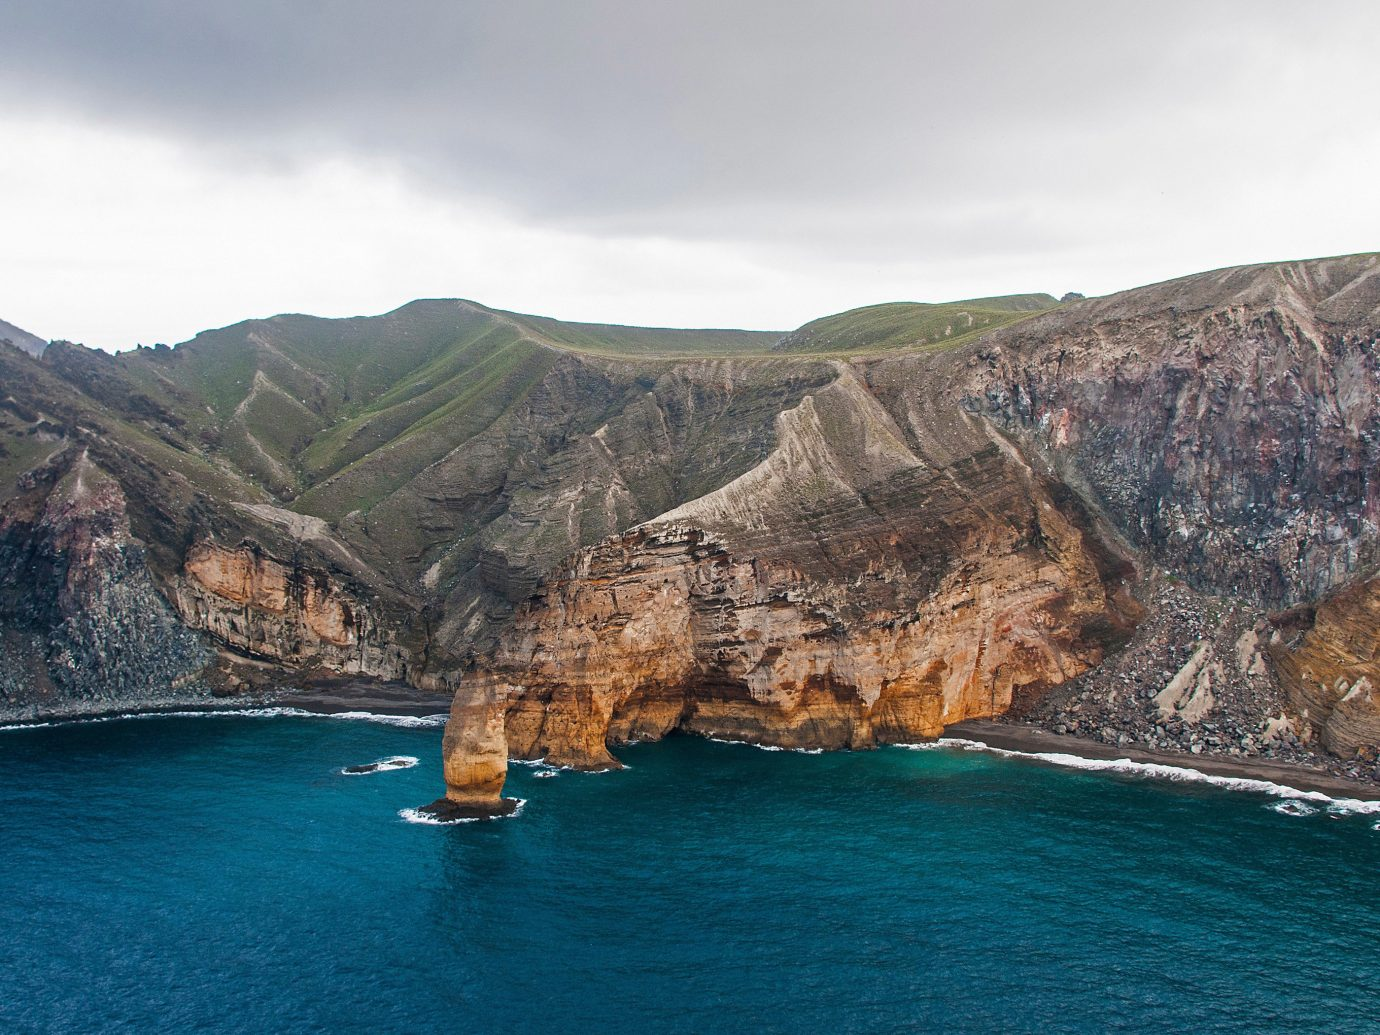 Trip Ideas mountain sky Nature water outdoor geographical feature landform Coast Sea body of water cliff bay terrain rock Ocean cape fjord cove Island